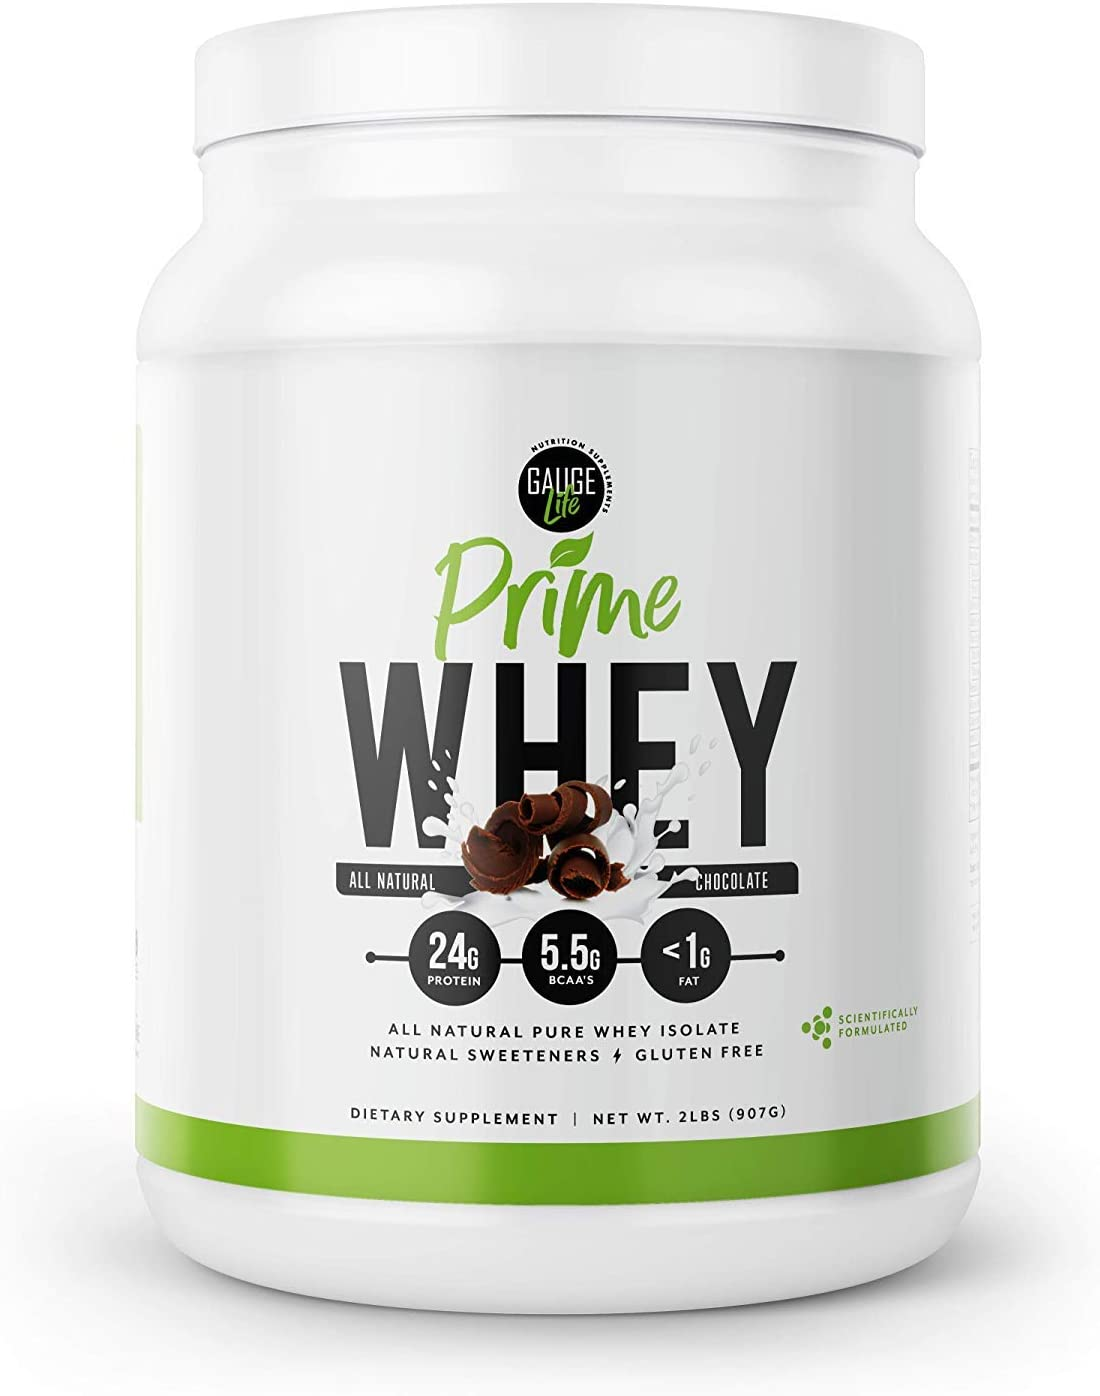 Gauge Life Prime Whey Isolate Chocolate Protein Powder from Pasture Raised Cows- Low Carb, Low Calorie, Non-GMO, Gluten Free, Soy Free. Great for Weight Loss Bodybuilding, 32 Servings